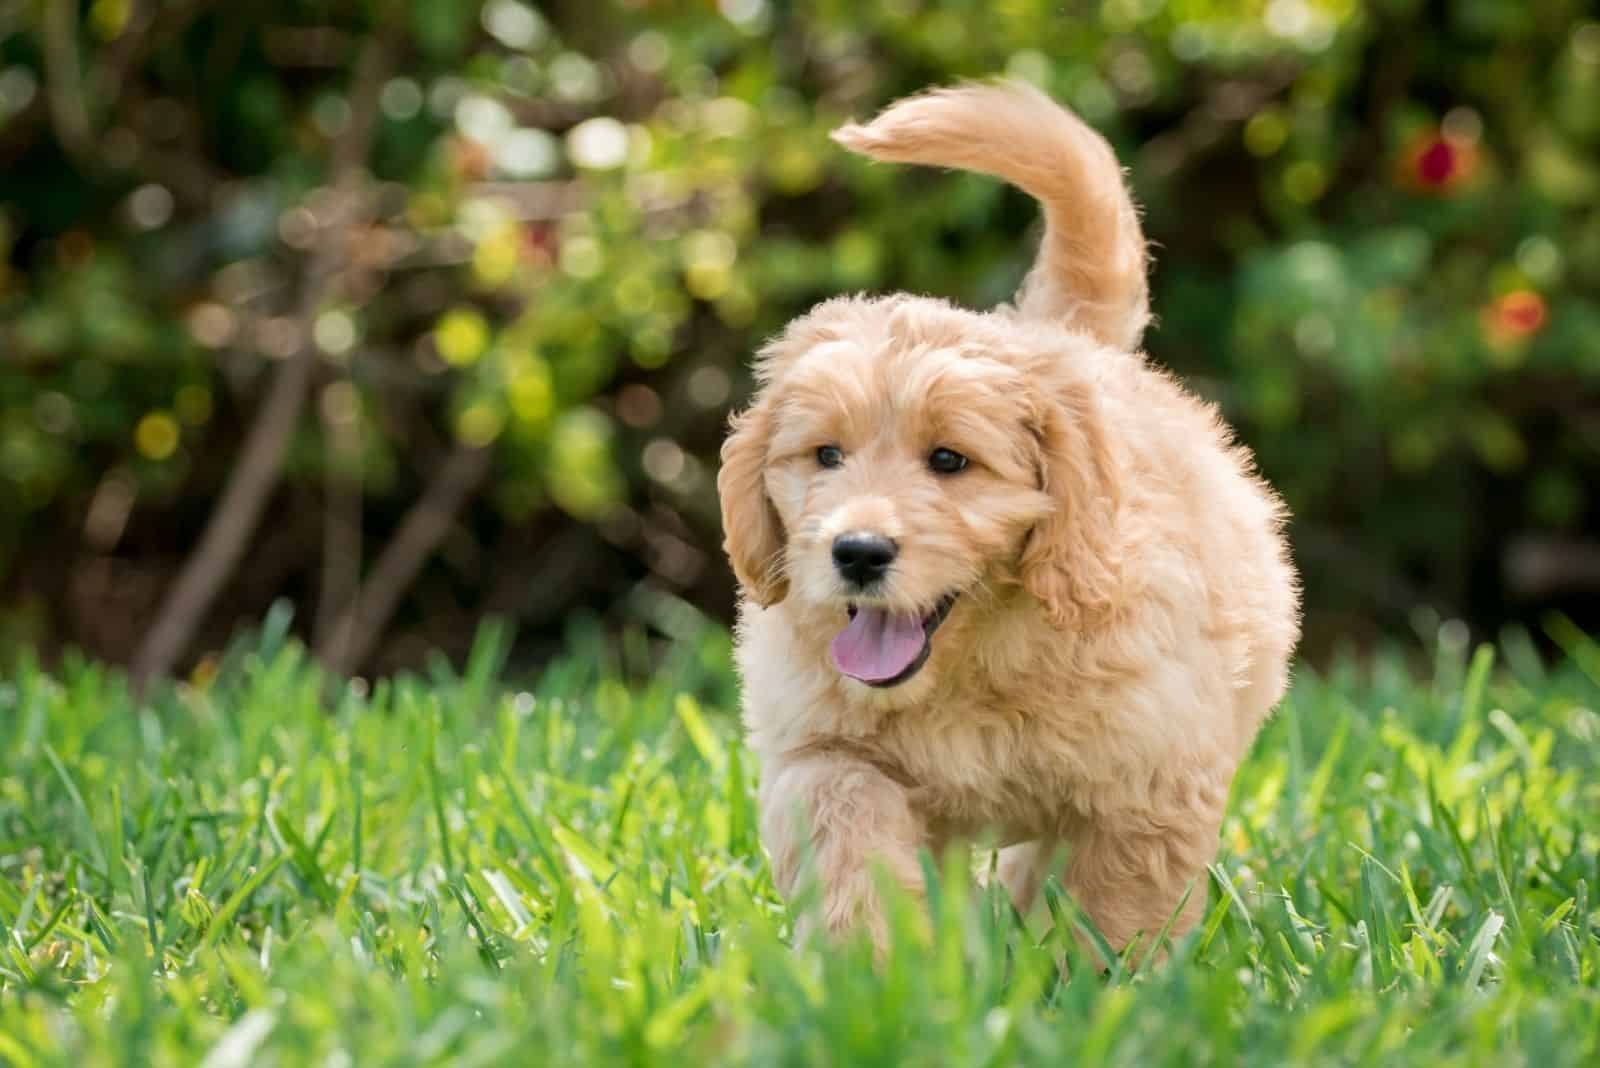 Goldendoodle puppy runs across the field